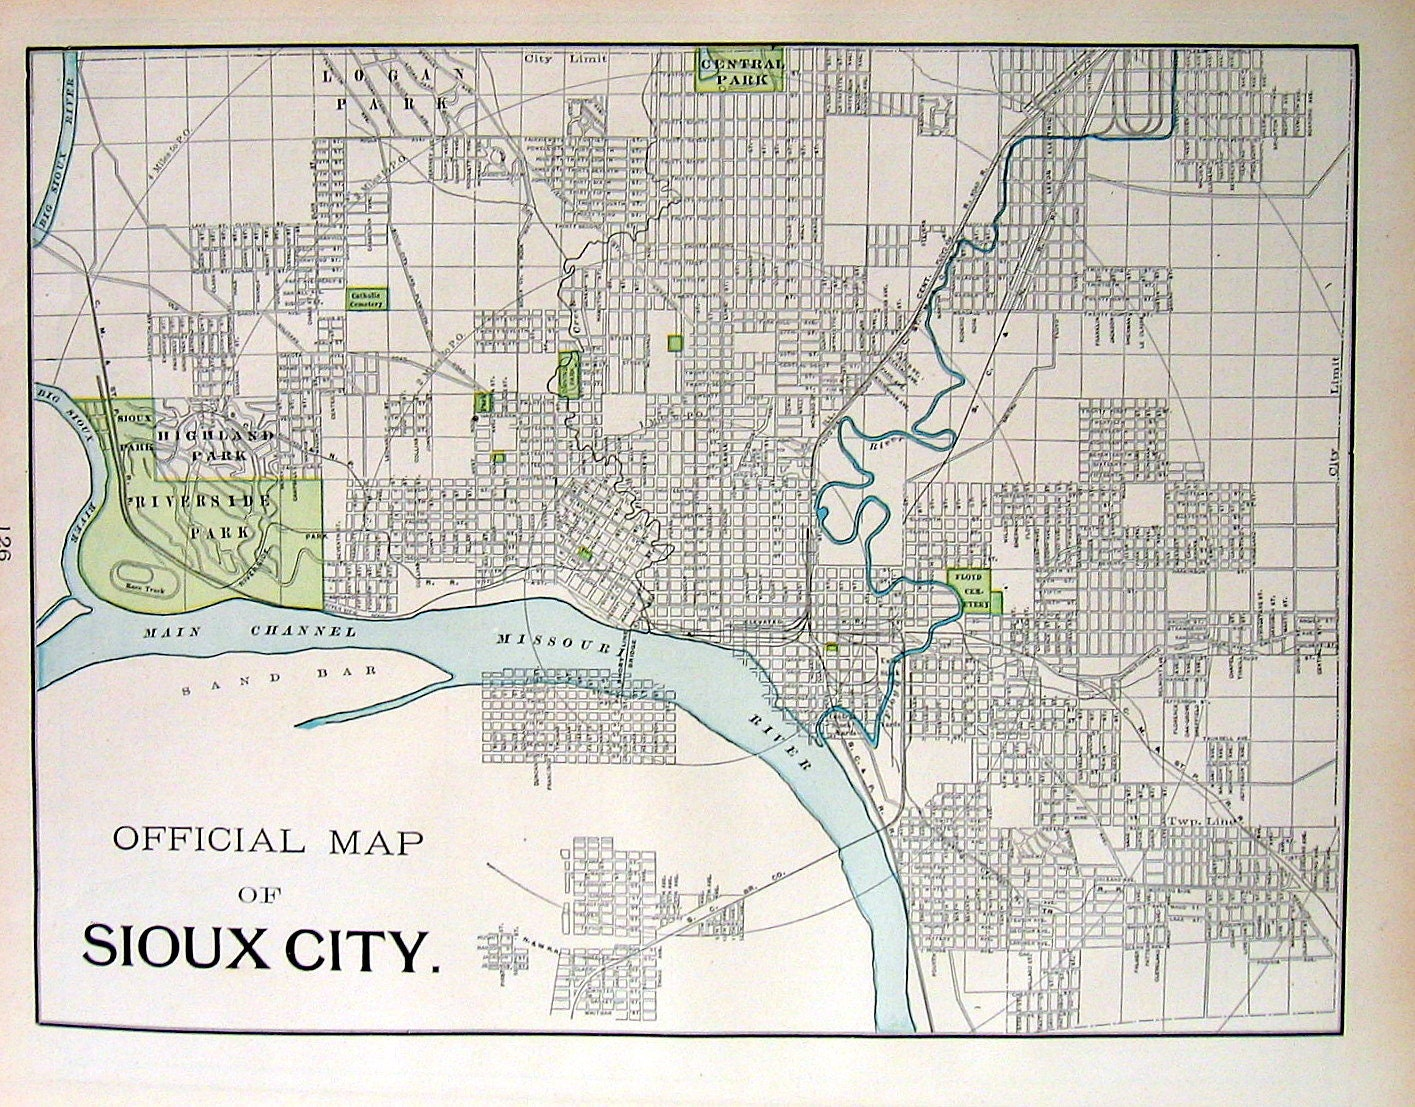 Council Bluffs Iowa And Map Submited Images  Pic2Fly